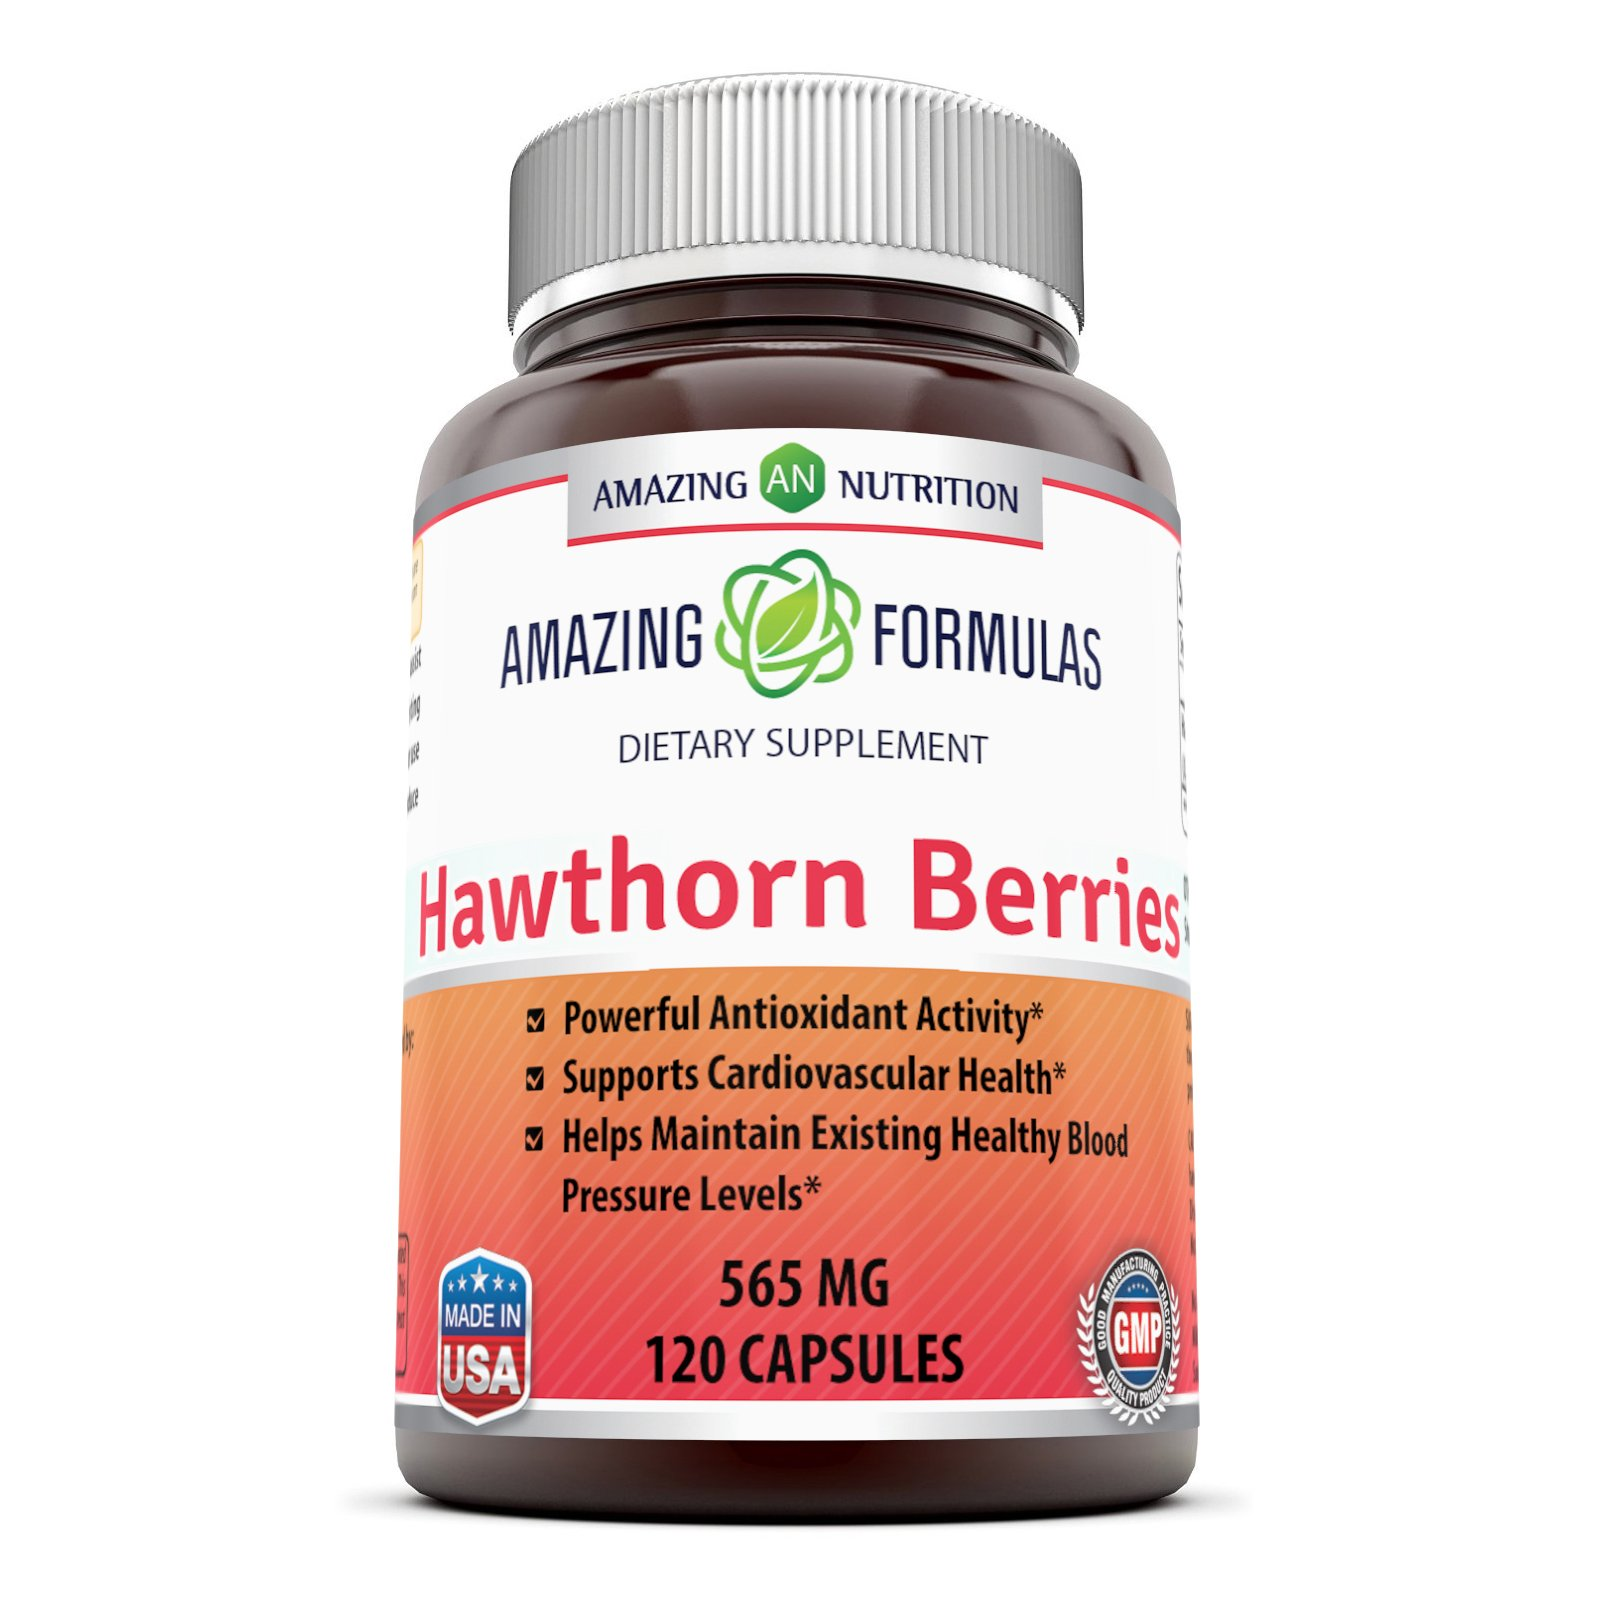 Amazing Formulas Hawthorn Berries 100% Pure Hawthorne Berry Extract * Powerful Anioxidant Activity * Supports Cardiovascular Health* 565mg Herb Capsules * 120 Capsules Per Bottle